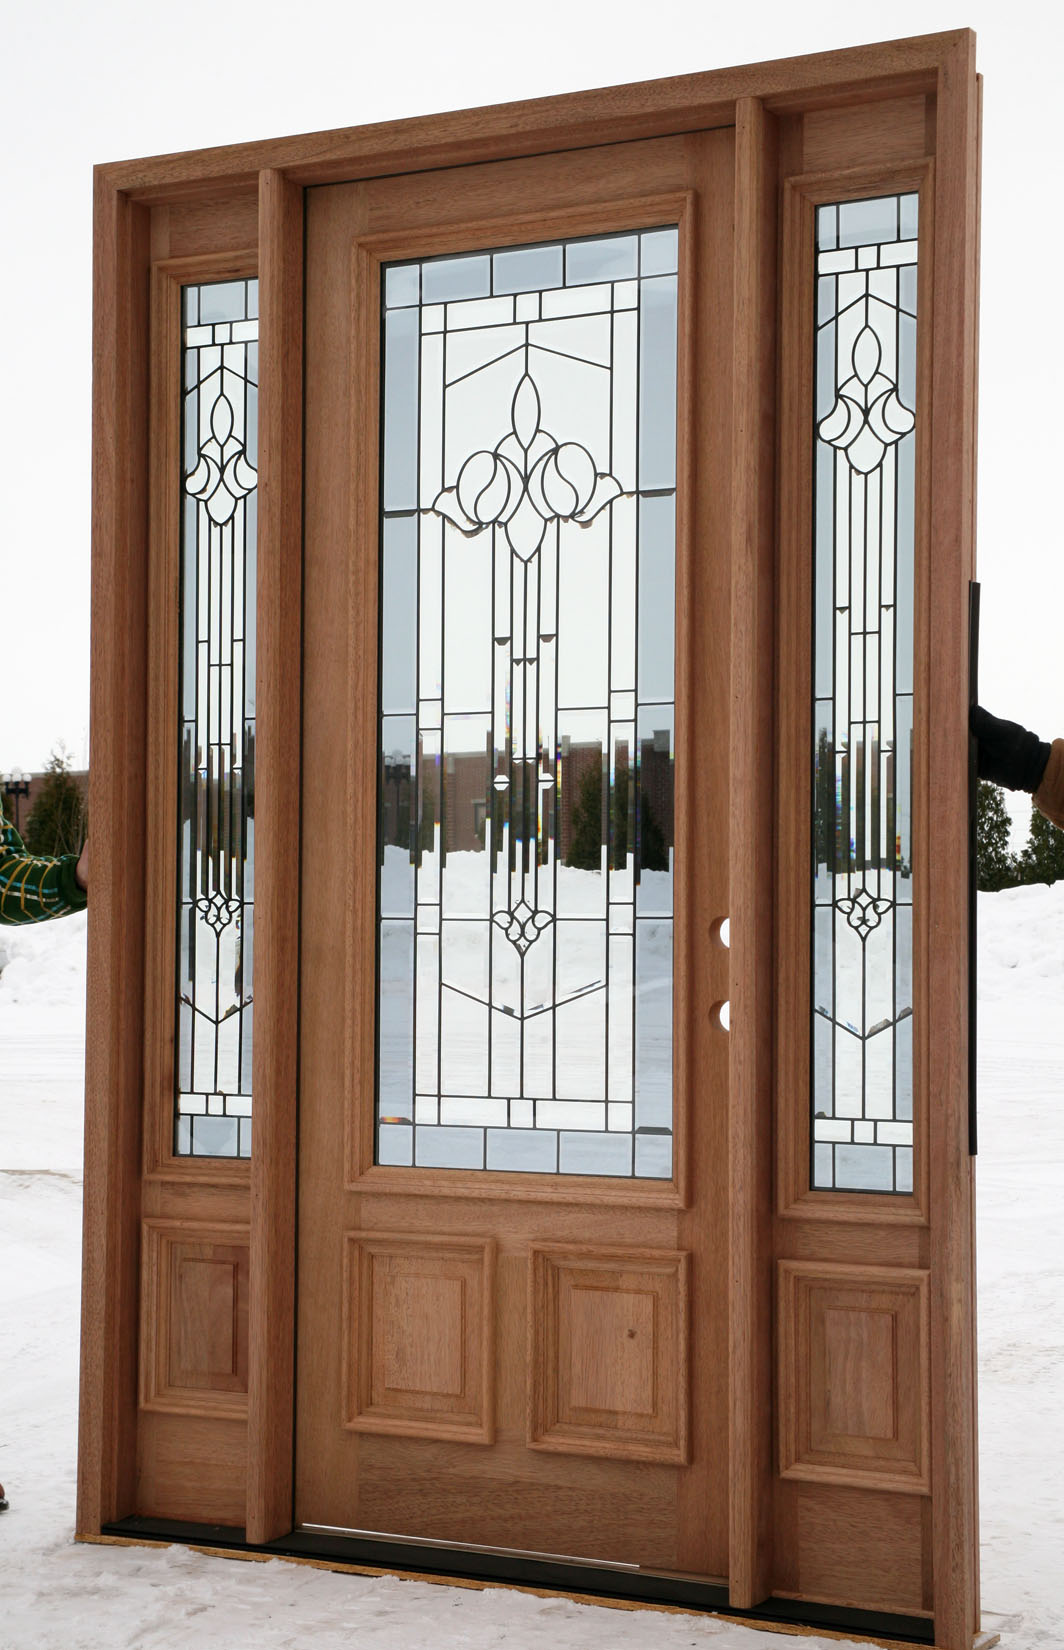 1650 #70462E Exterior Entry Door With Sidelights pic Entry Doors With Transom 40411064